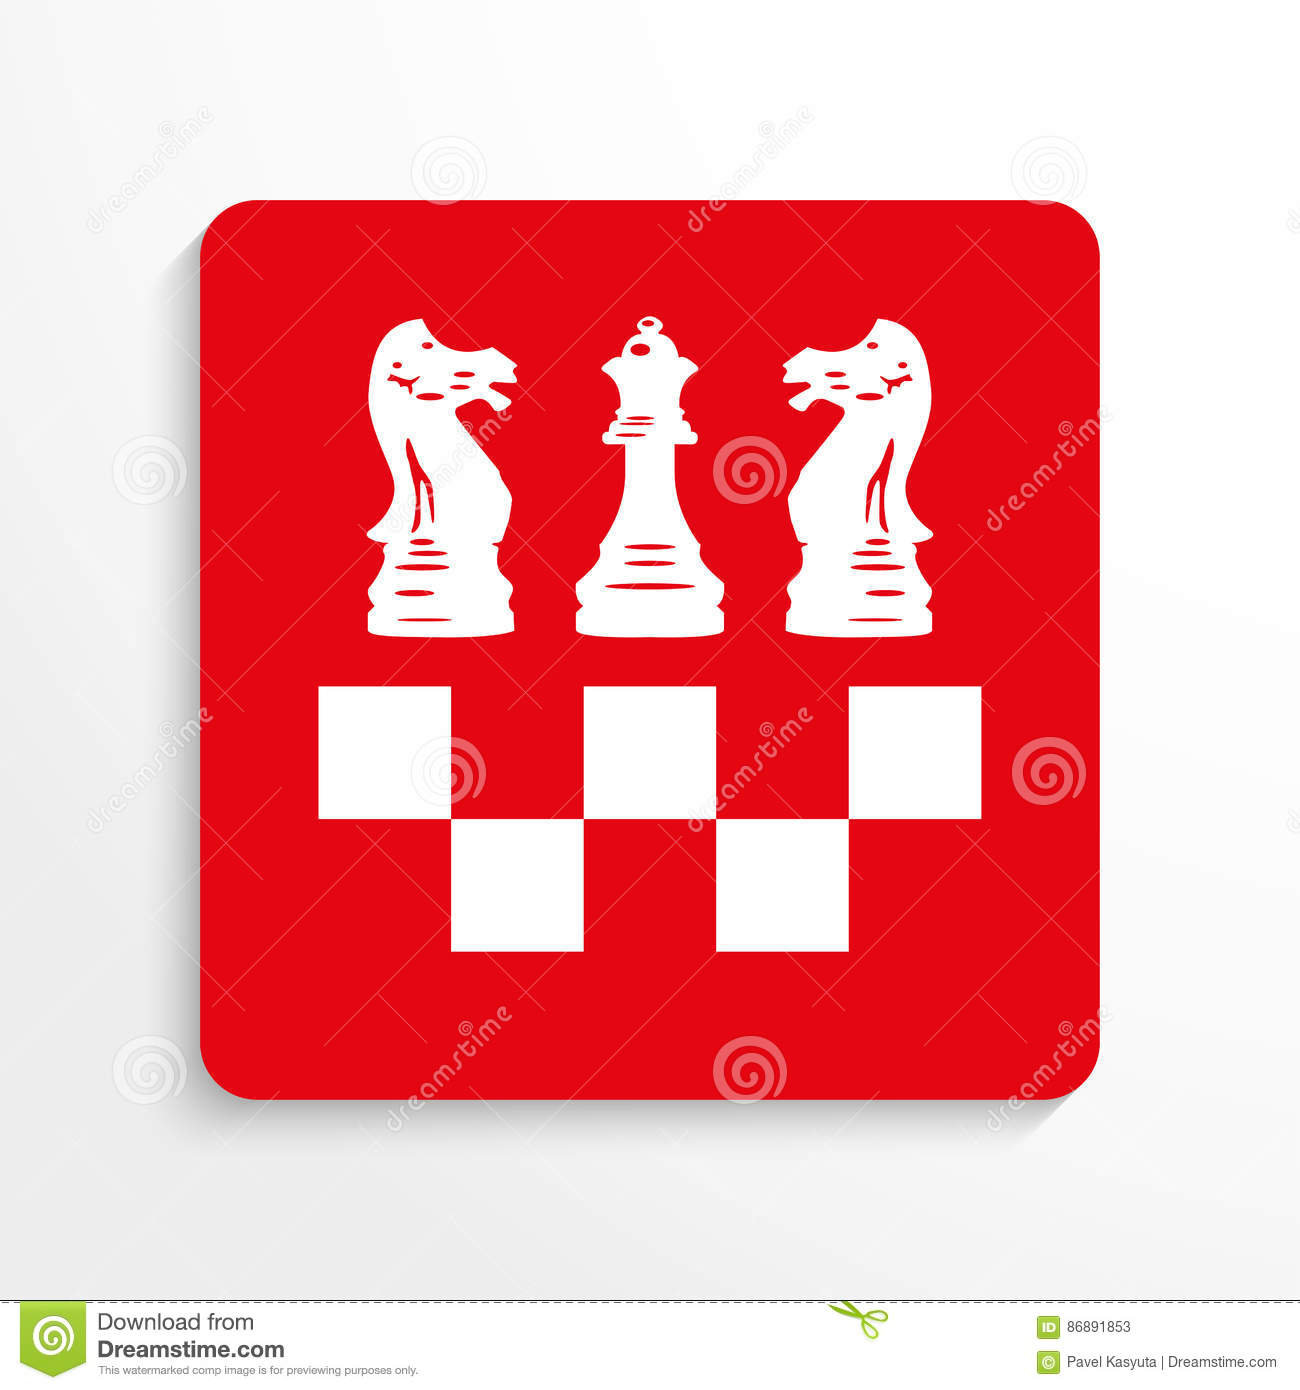 Sports Symbols Chess Vector Icon Red And White Image On A Light